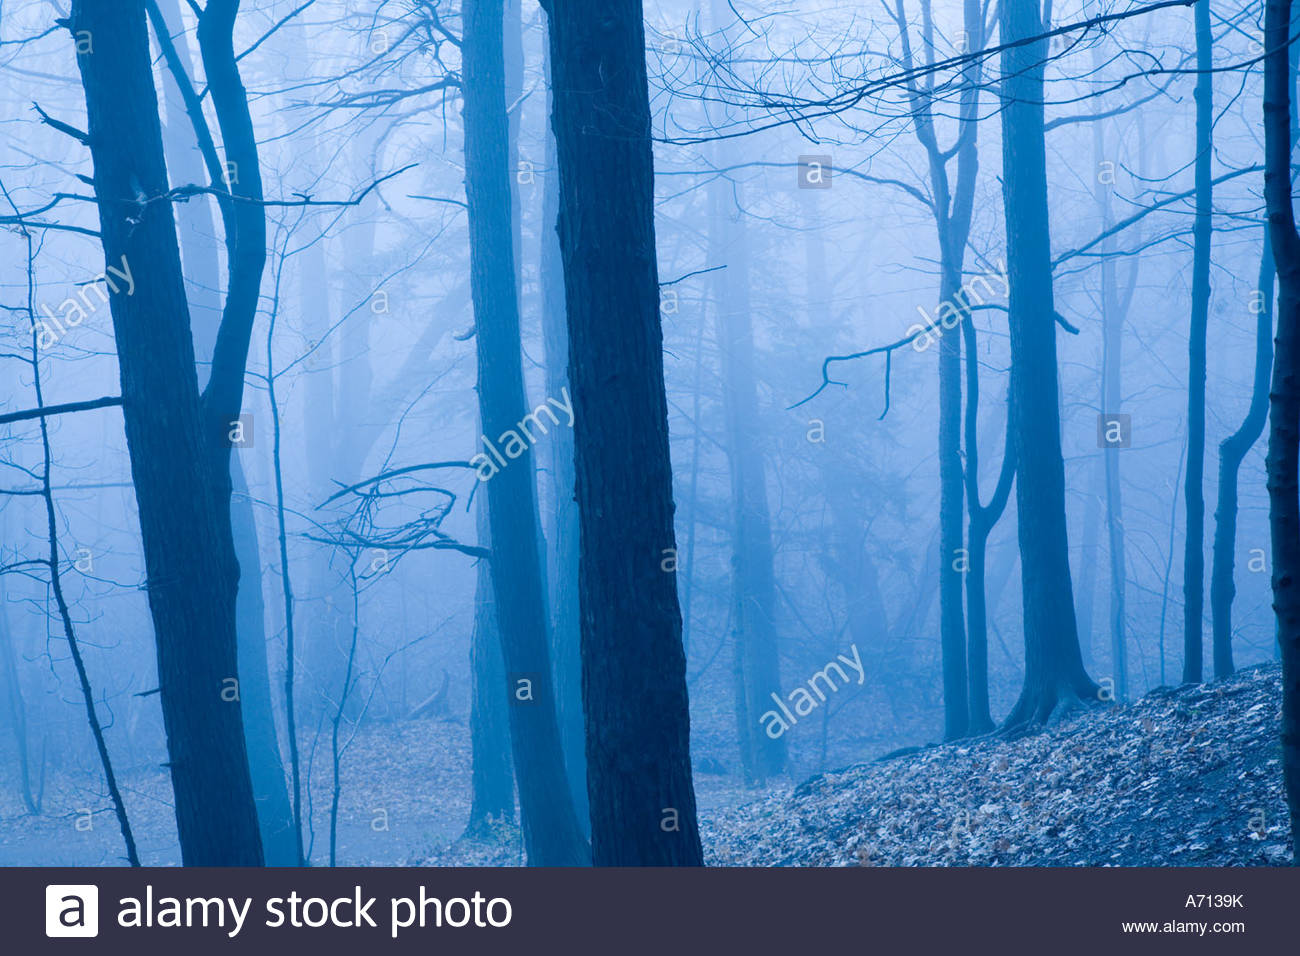 Fog in Bluffers Park located in the Scarborough area of Toronto Ontario Canada - Stock Image